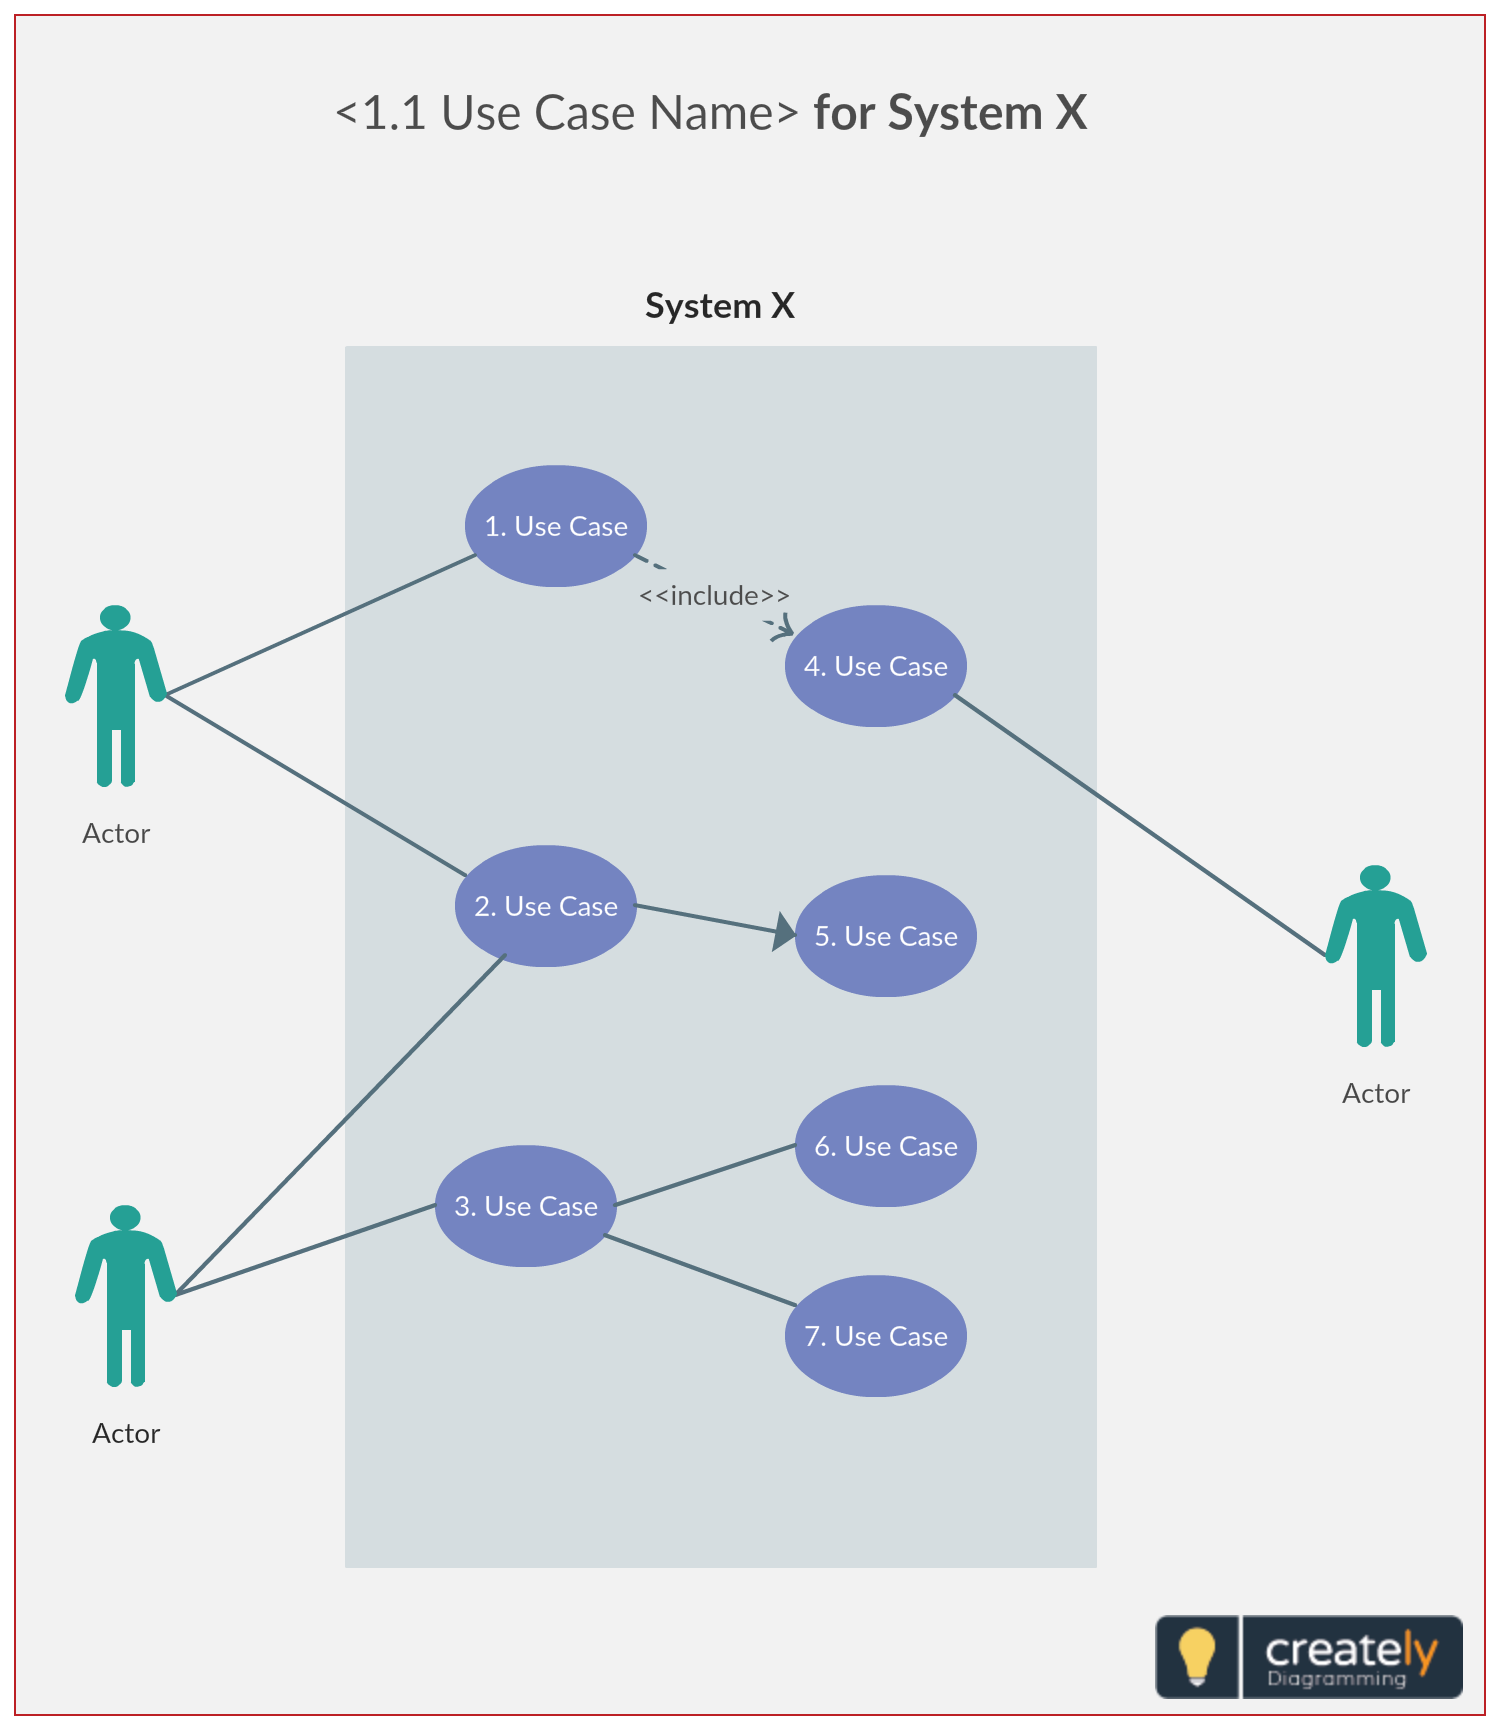 Uml Use Case Diagrams Use Case Diagrams Are Usually Referred To As Behavior Diagrams Used To Describe A Set Of Actions Use Cases Tha Use Case Templates Case